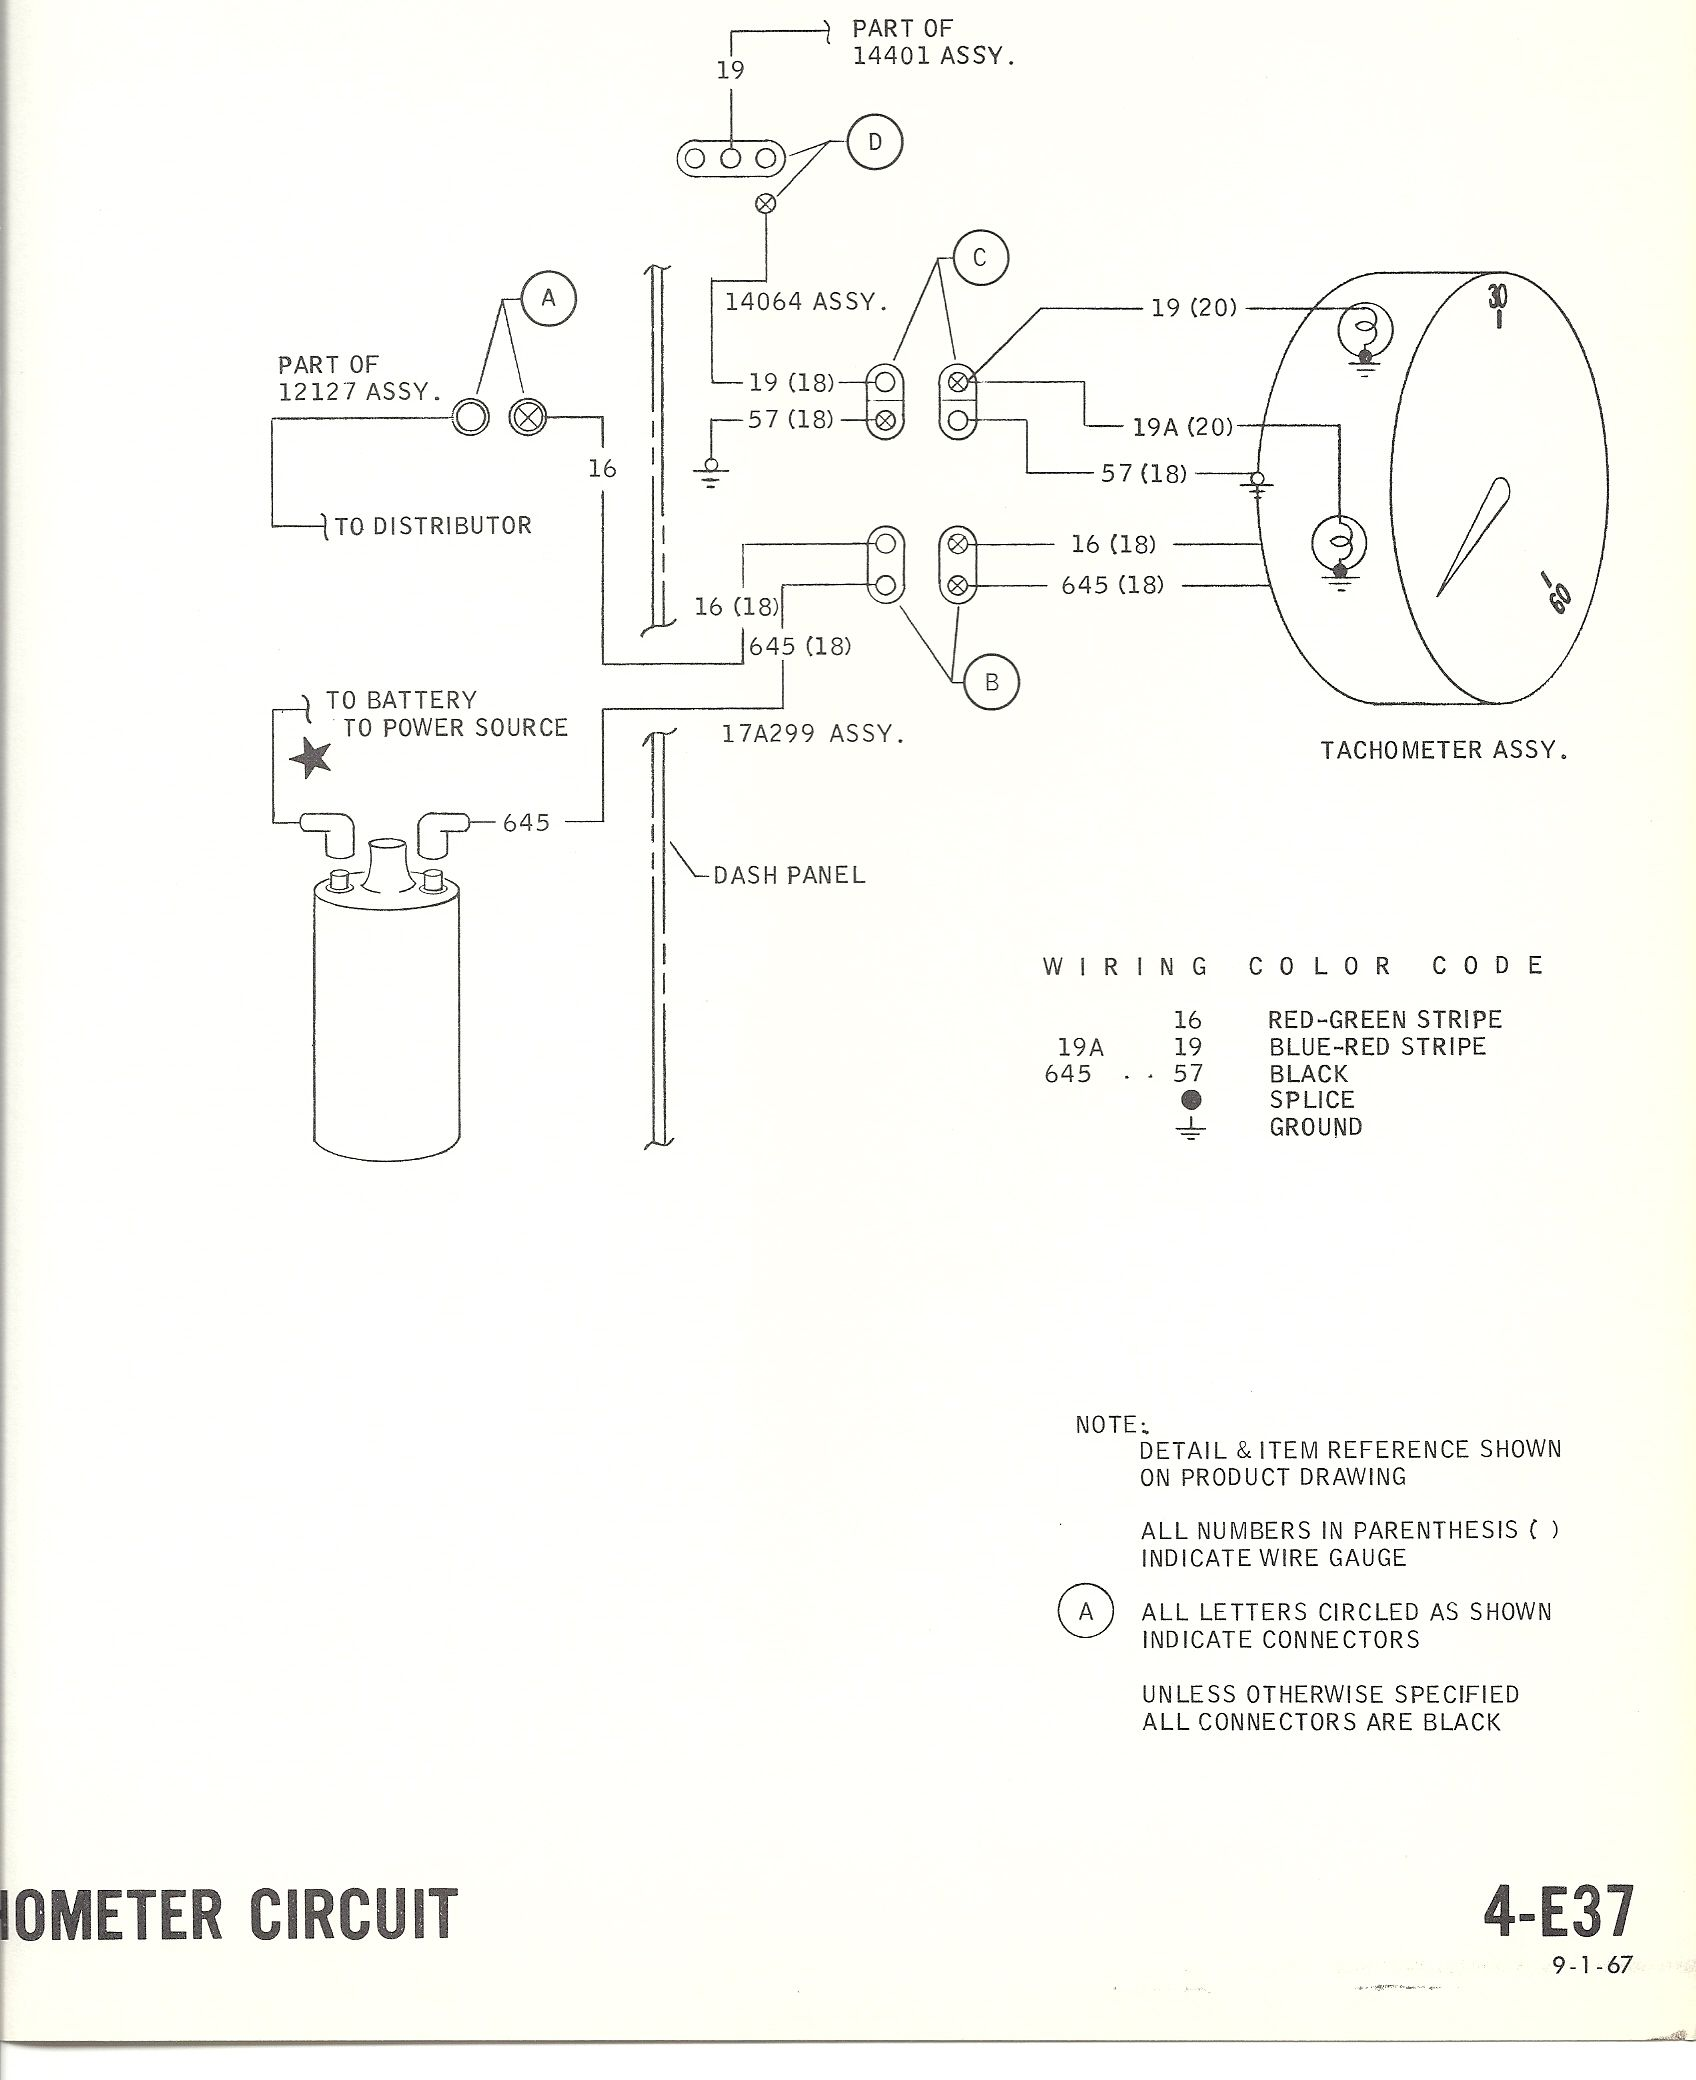 2b2f8e488a4c6a6b870c00f5af30de6c equus fuel gauge wiring diagram water gauge wiring diagram \u2022 free sunpro fuel gauge wiring diagram at bakdesigns.co